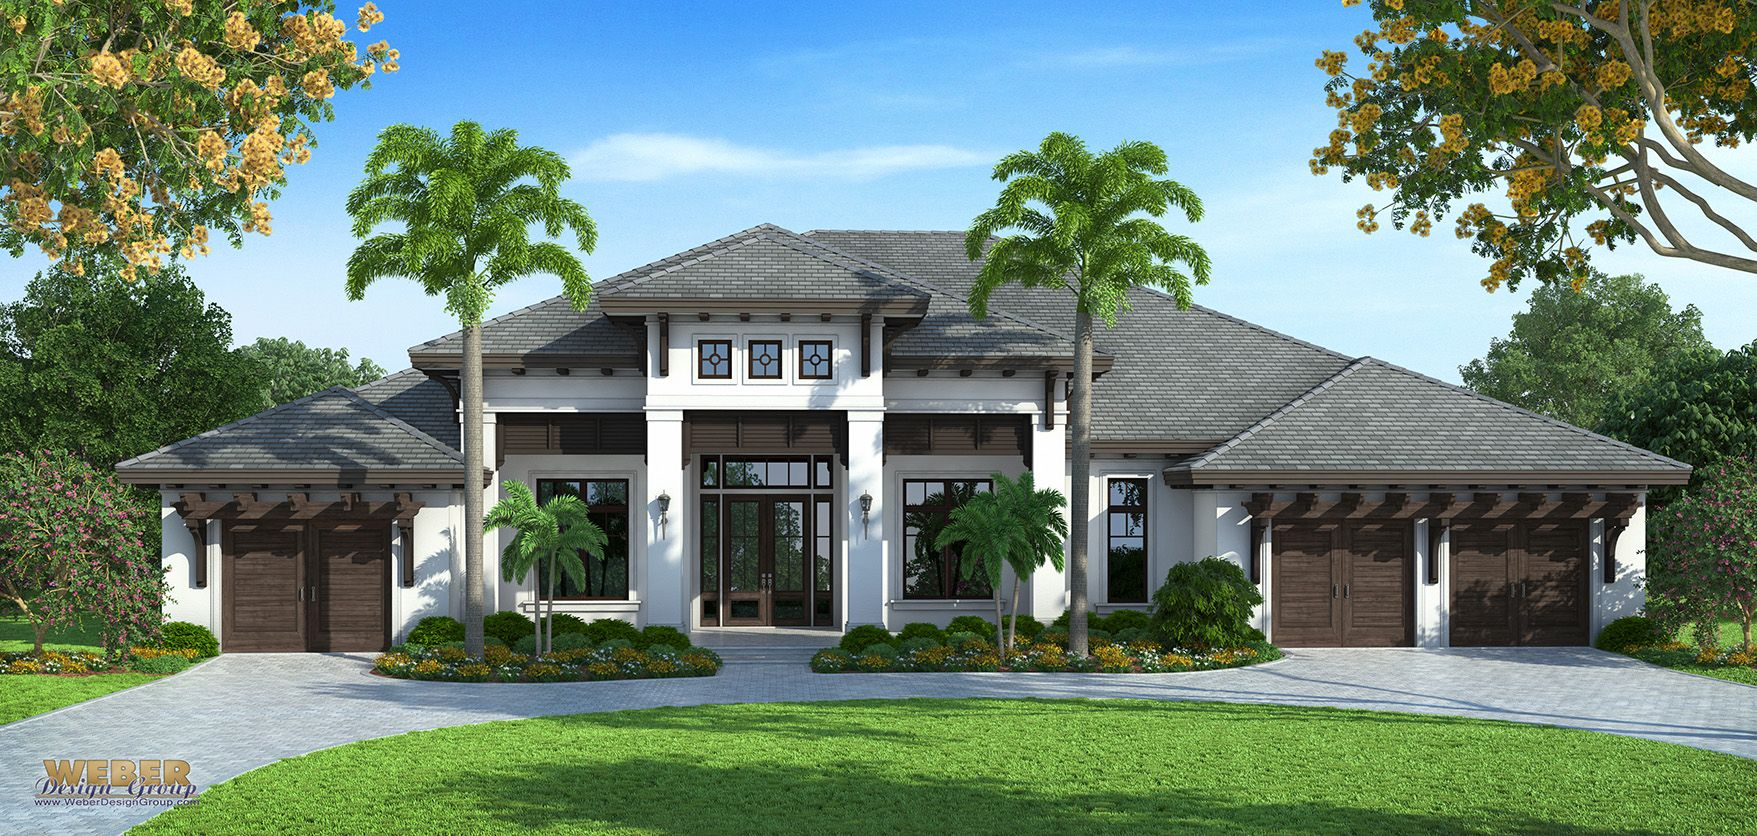 transitional west indies style house plans by weber design